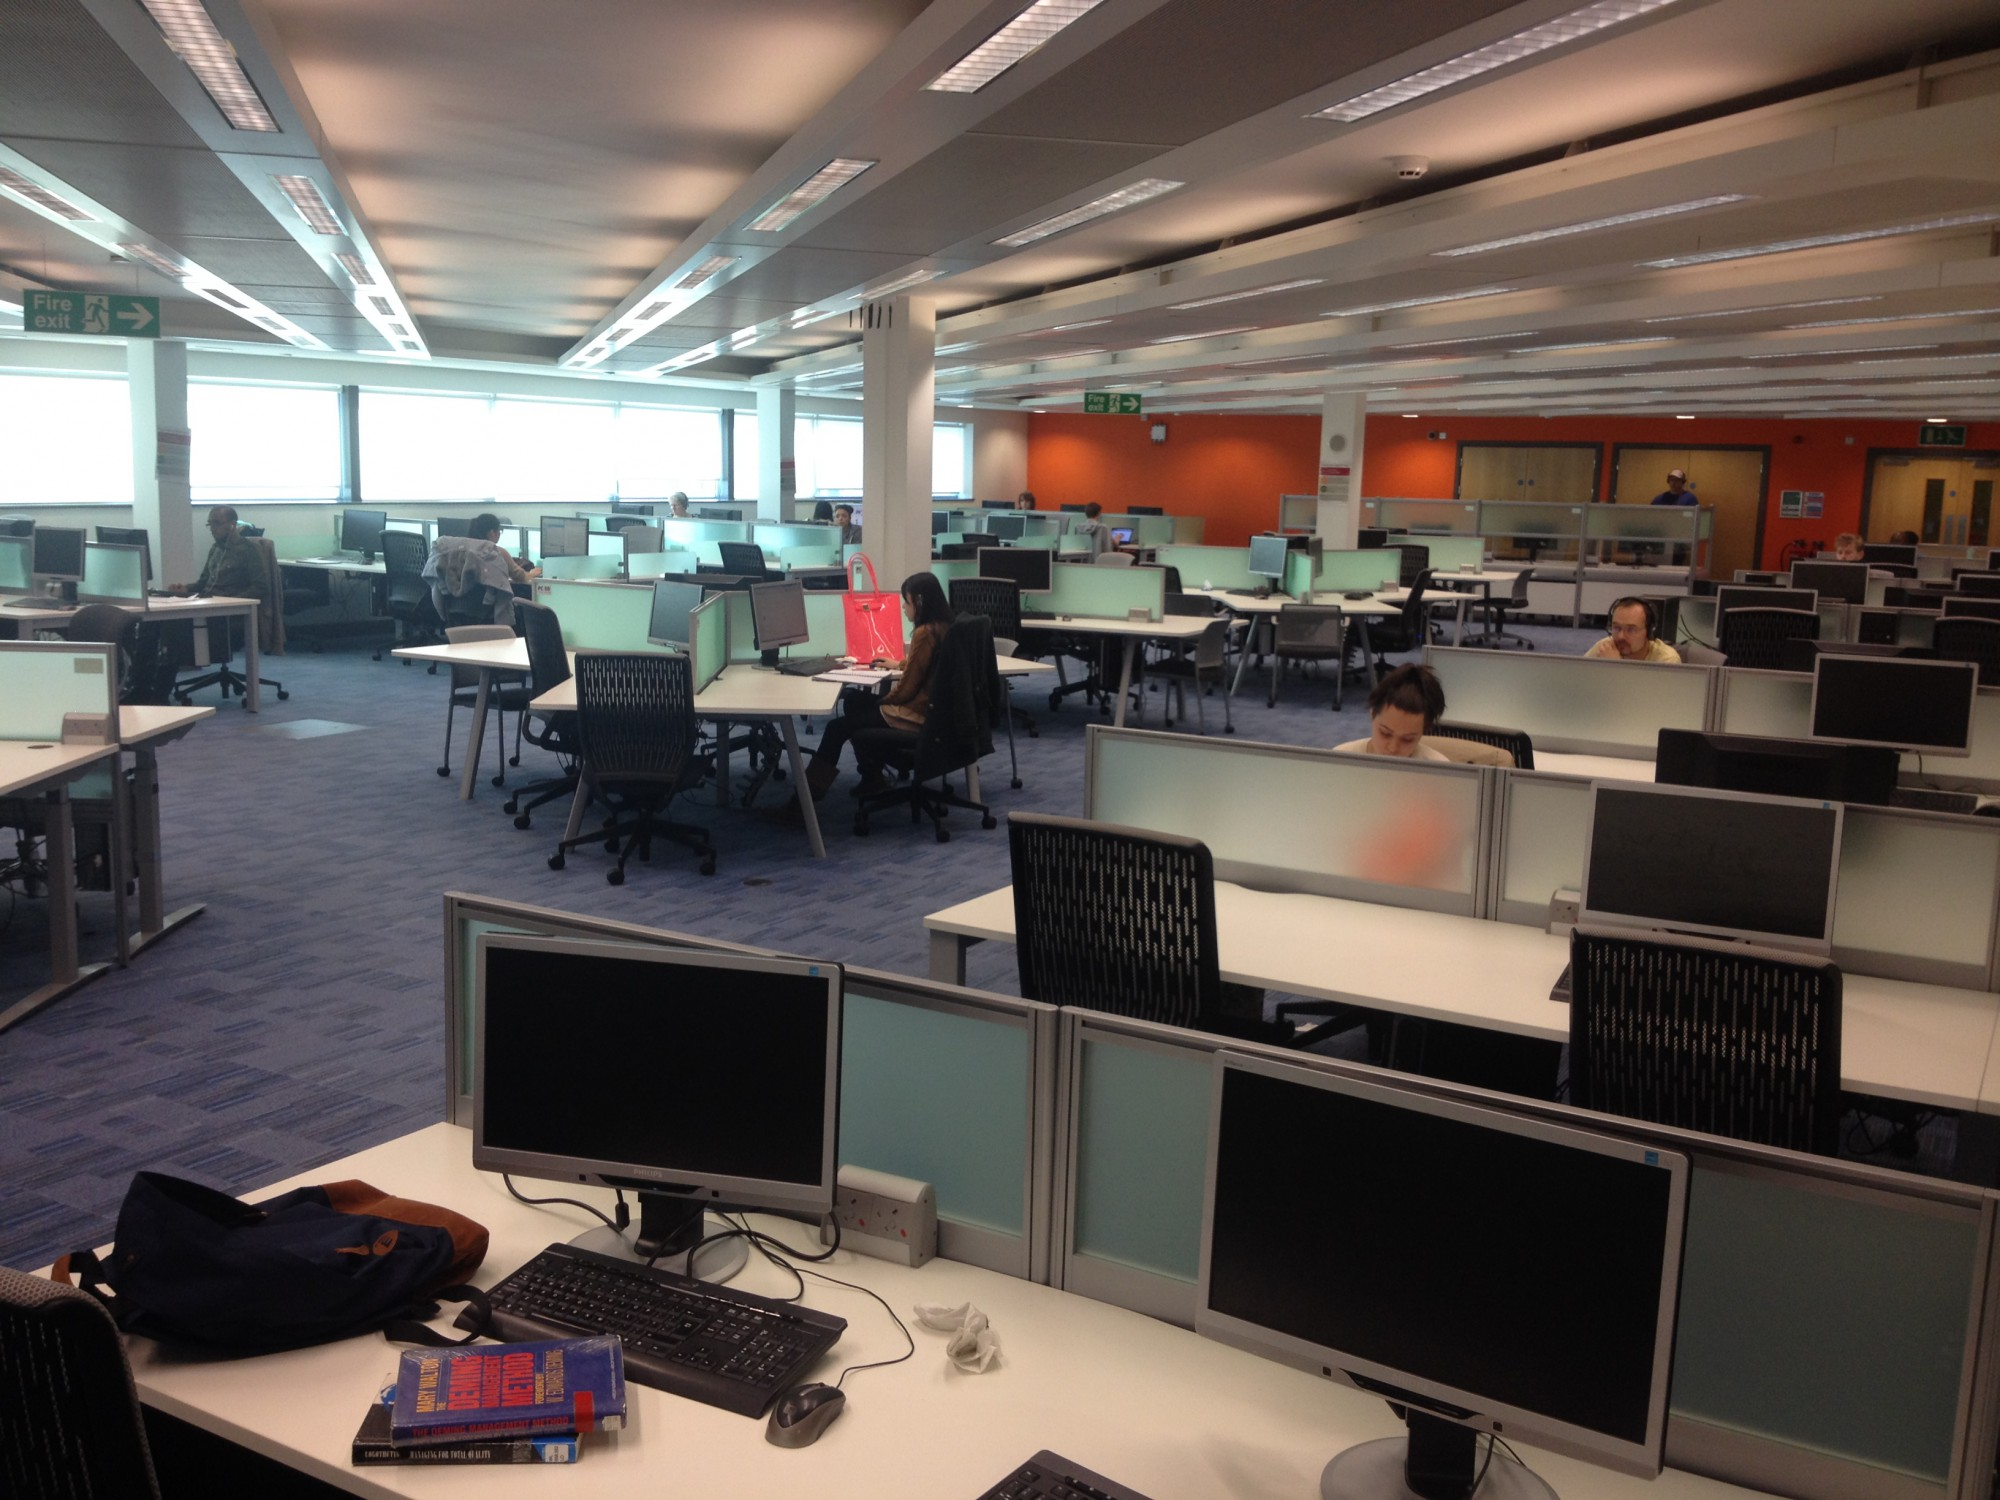 Sheffield Hallam University Adsett Learning Resource Centre